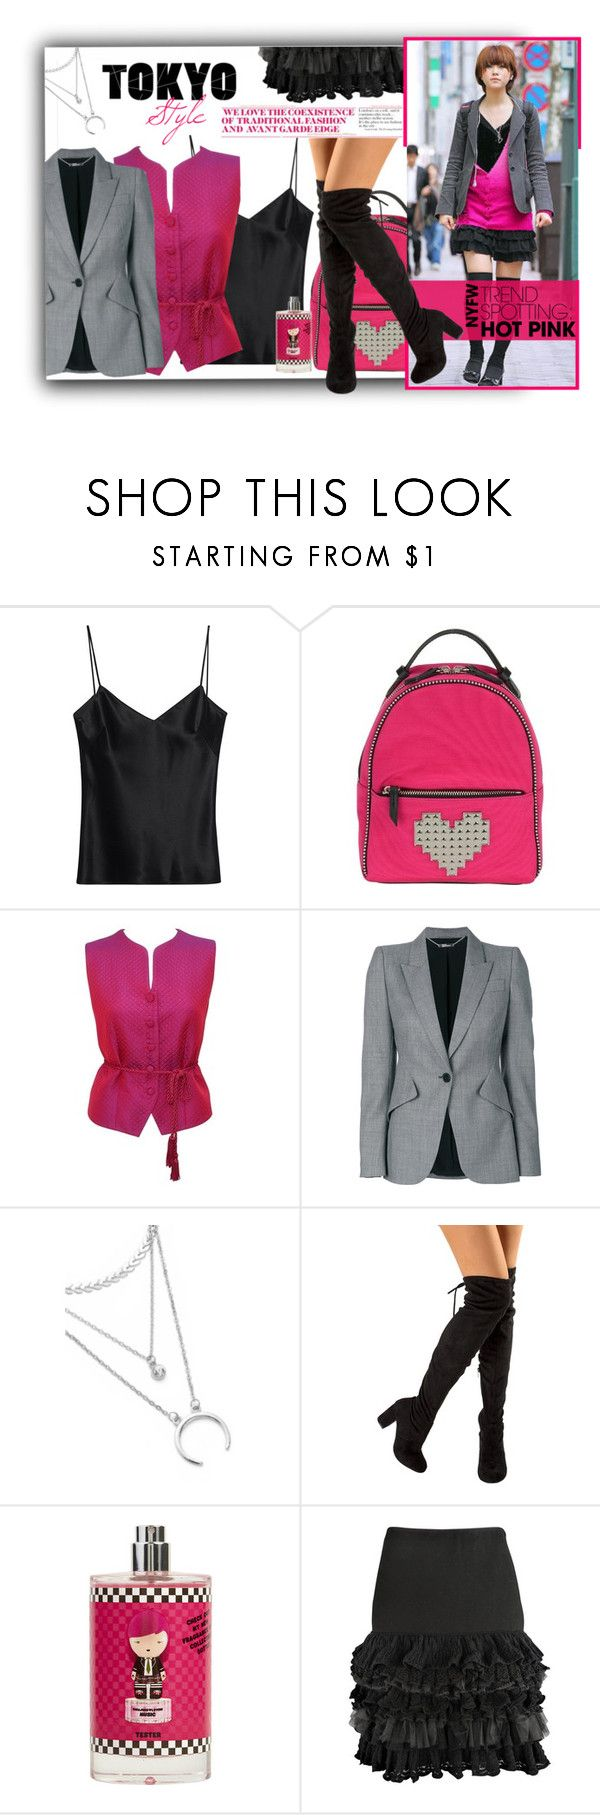 """""""NYFW : Hot Pink - Harajuku Inspired"""" by atikazahra on Polyvore featuring Galvan, Les Petits Joueurs, Burberry, Alexander McQueen, StreetStyle, harajuku, contestentry, tokyo and NYFWHotPink"""